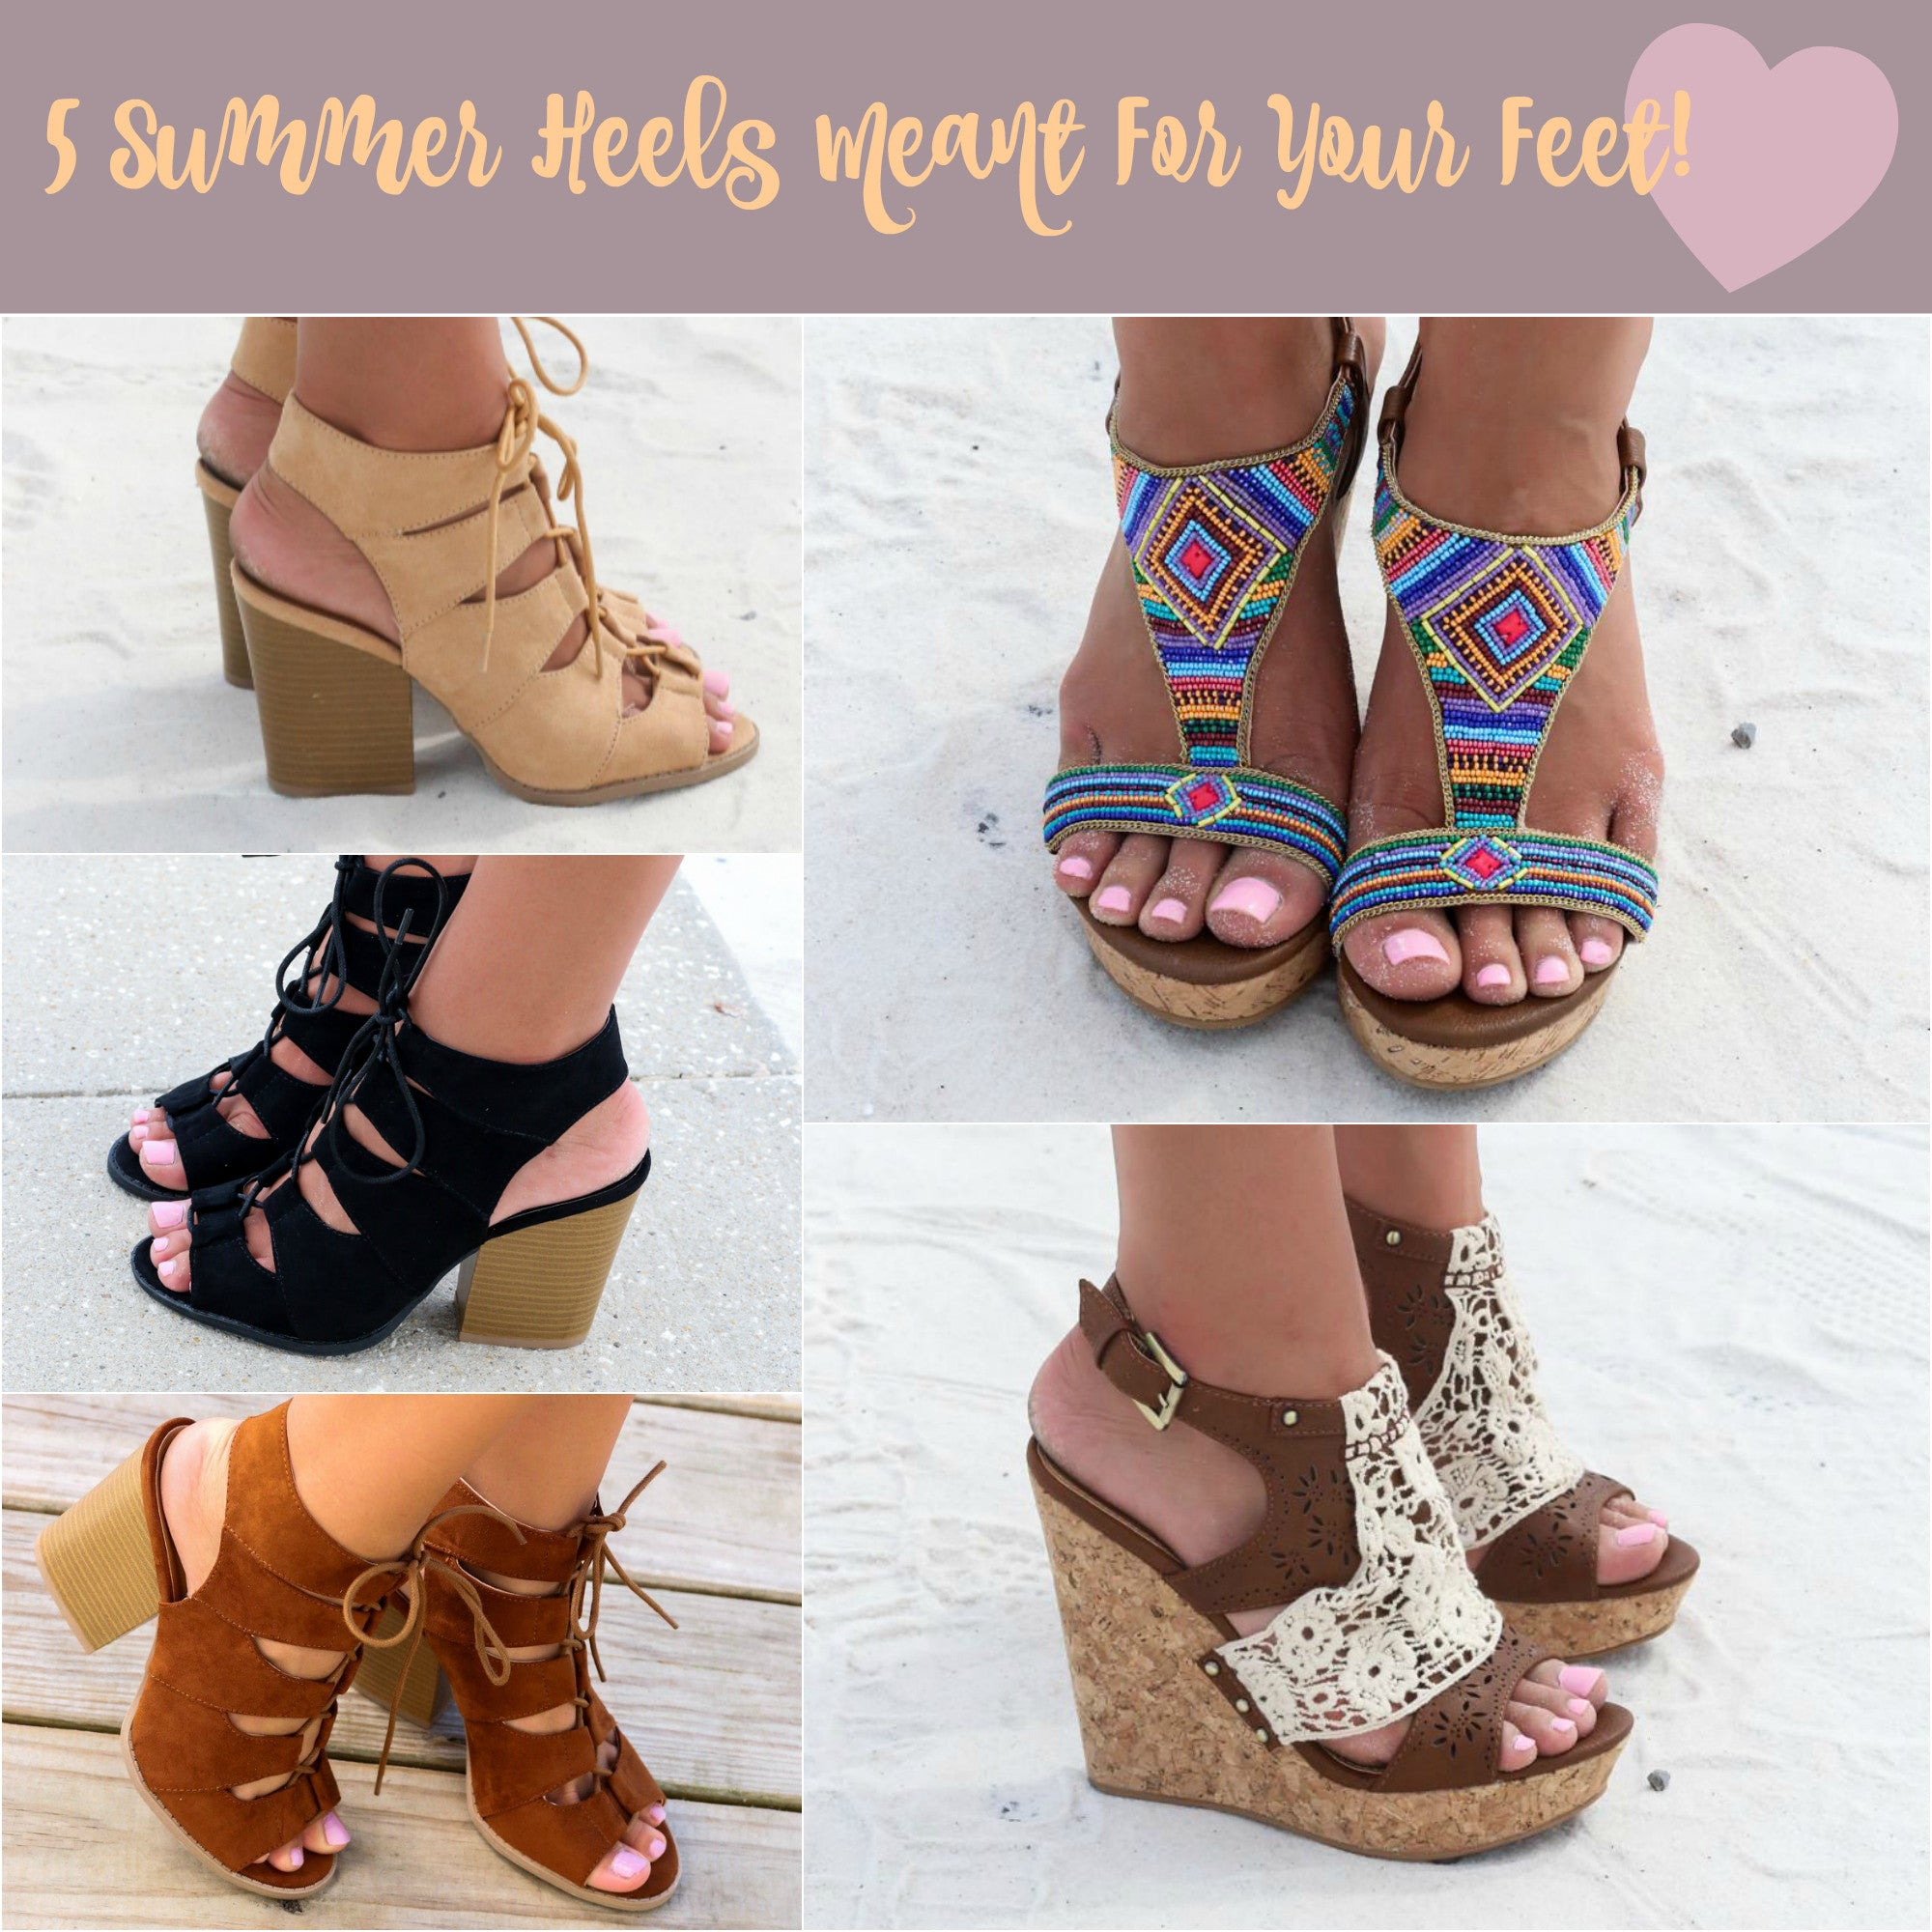 5 Summer Heels Meant For Your Feet!